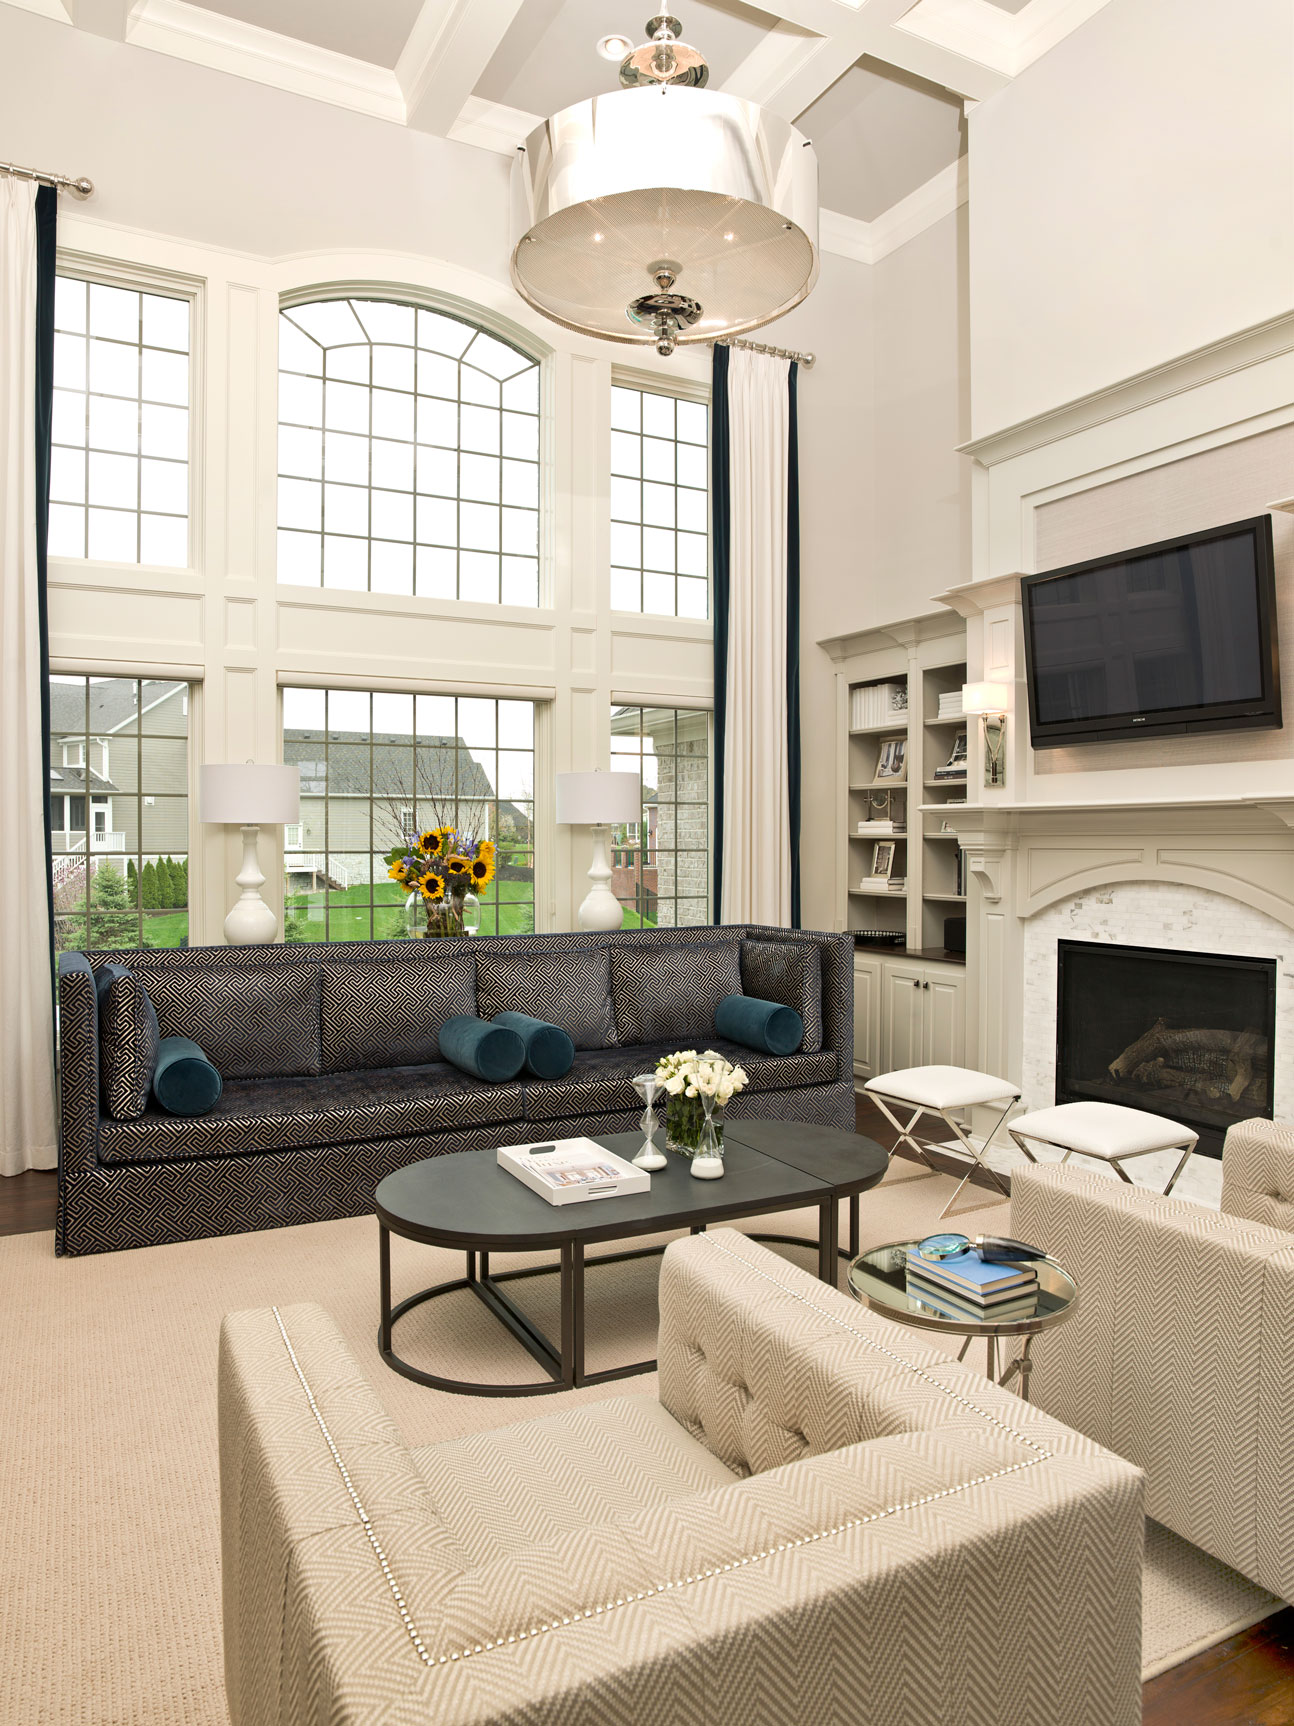 Courtney Casteel, Interior Design Living Room design